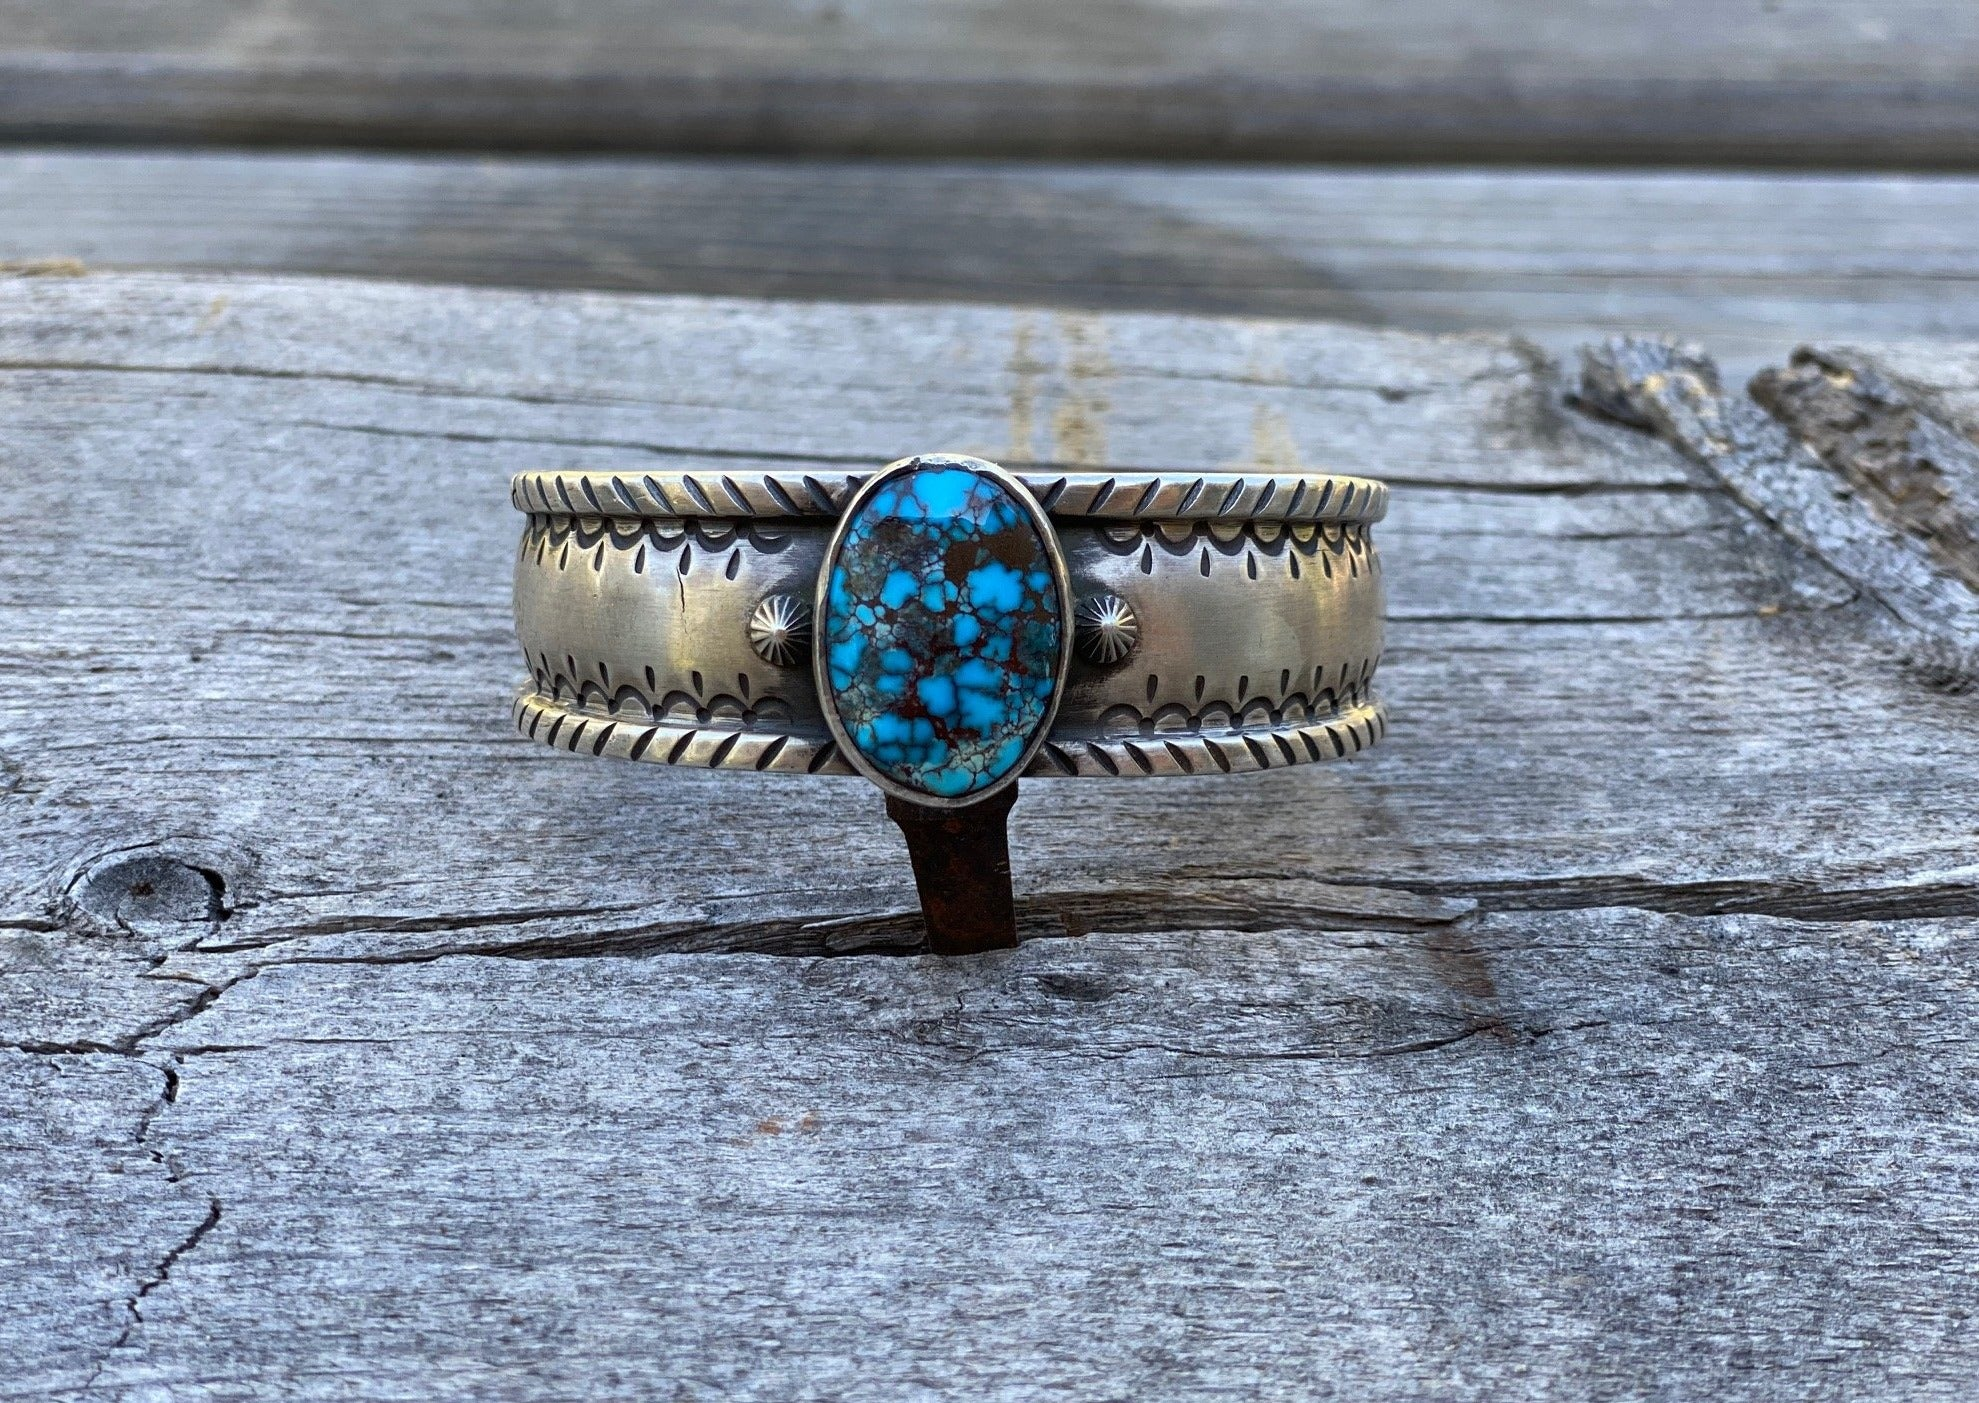 southwest silver bracelet with egyptian turquoise stone